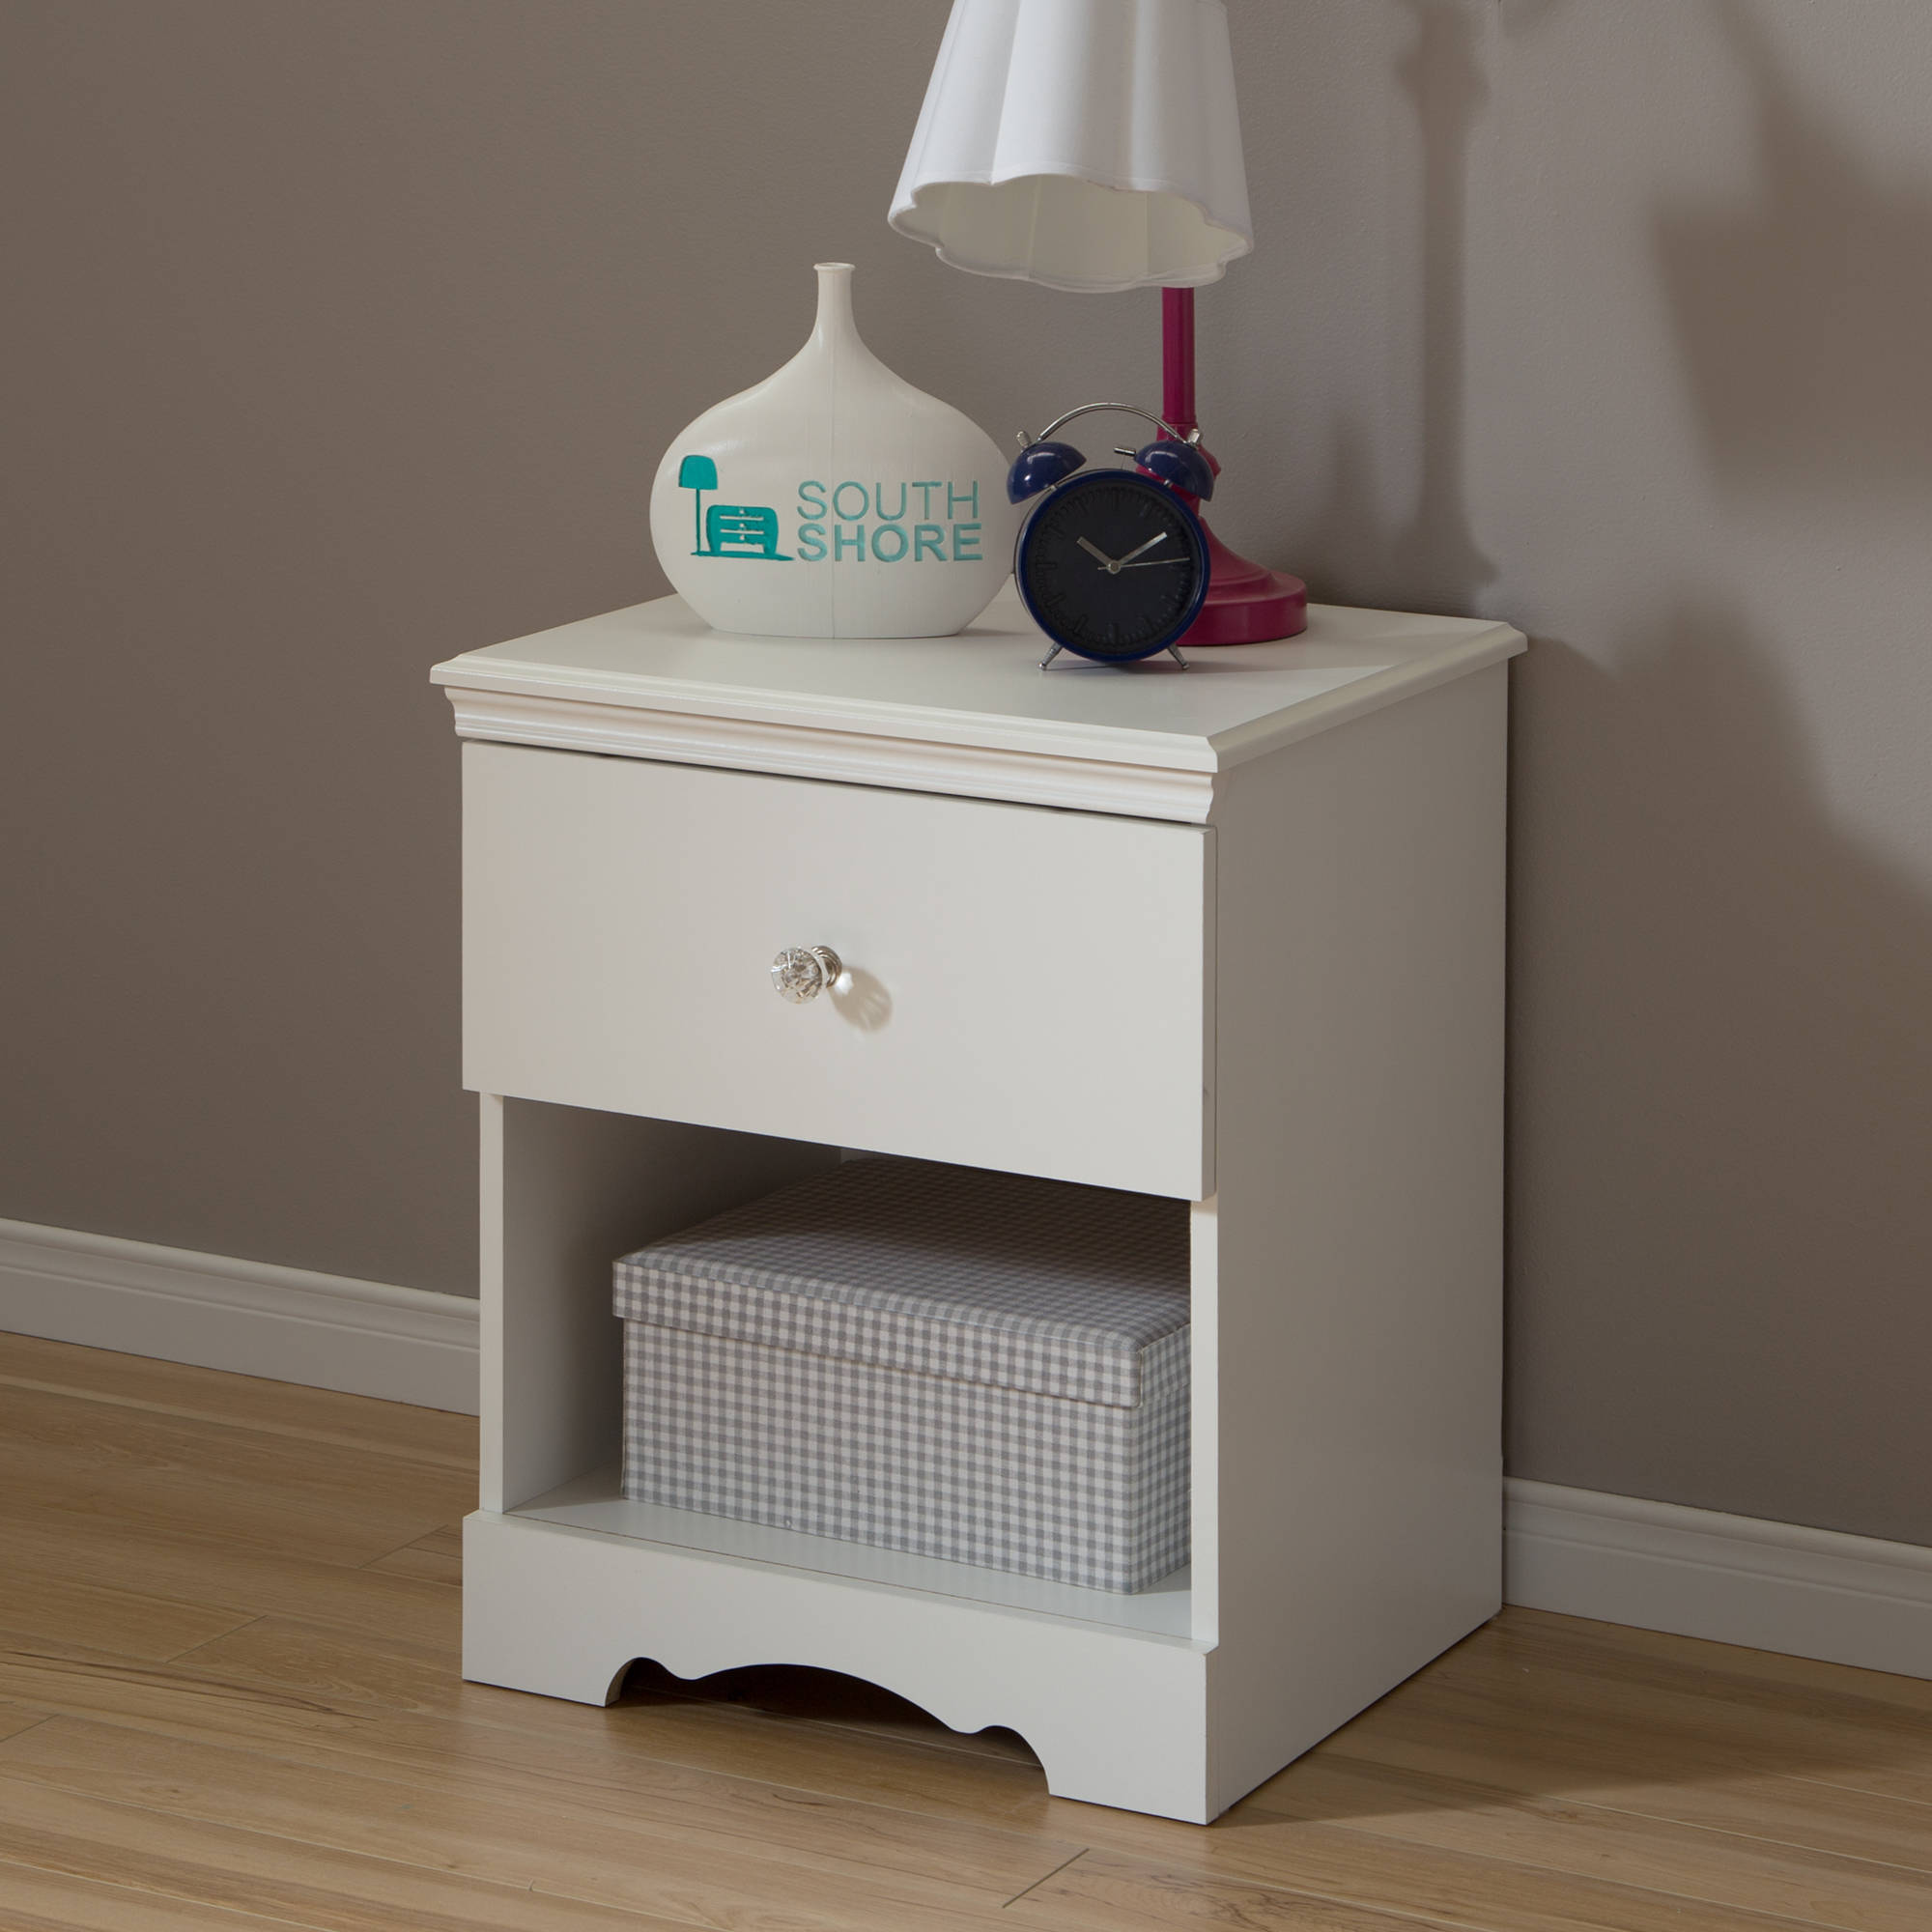 South Shore Crystal Nightstand, White